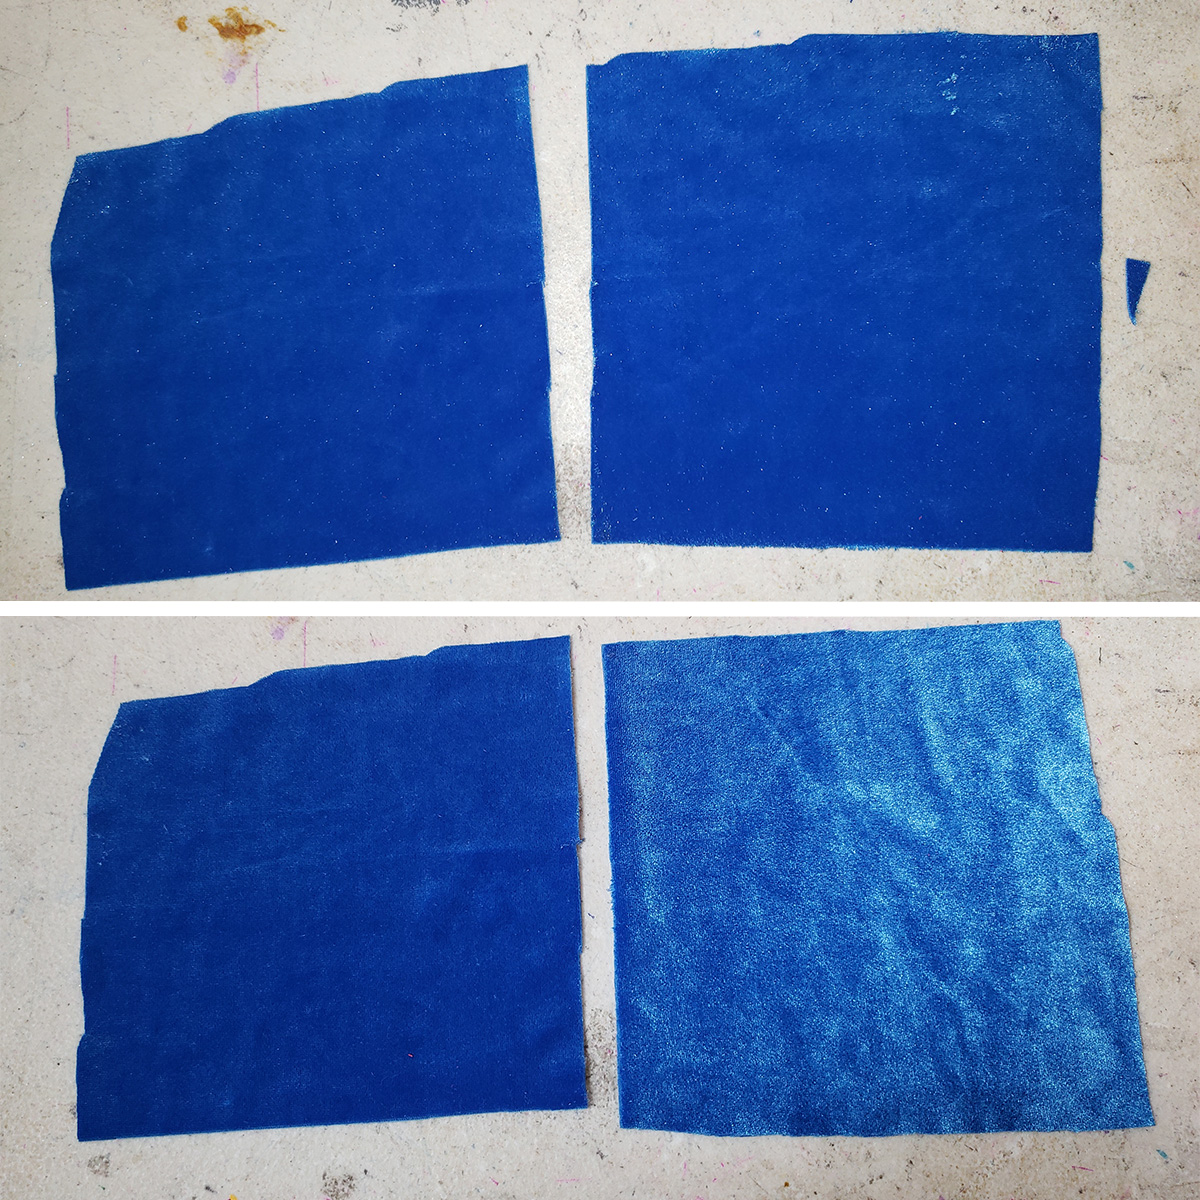 A two part compilation image showing squares of blue velvet from various views.